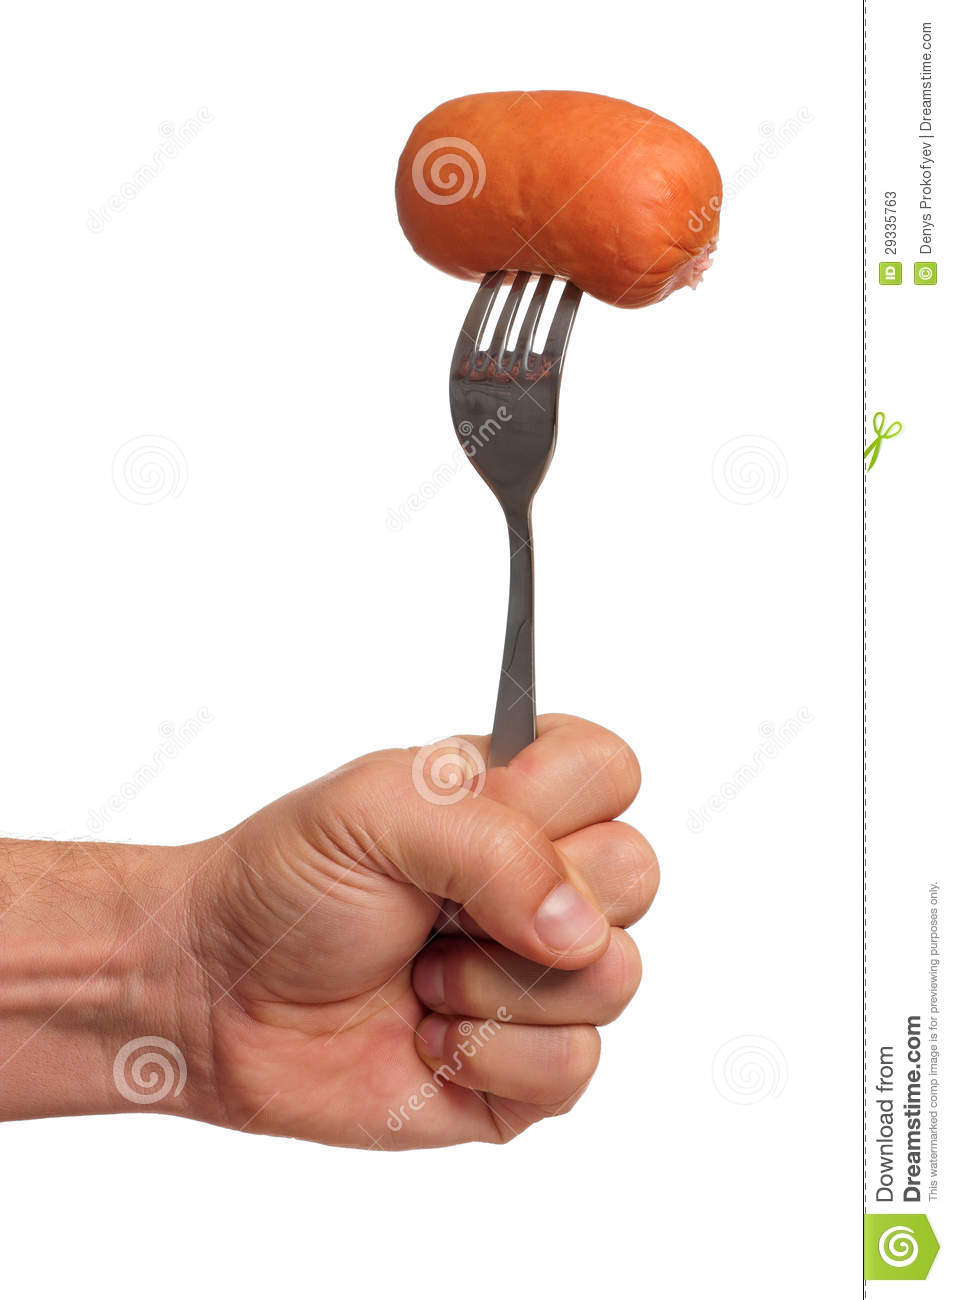 Sausage on fork stock image. Image of kitchen, nutritious - 29335763